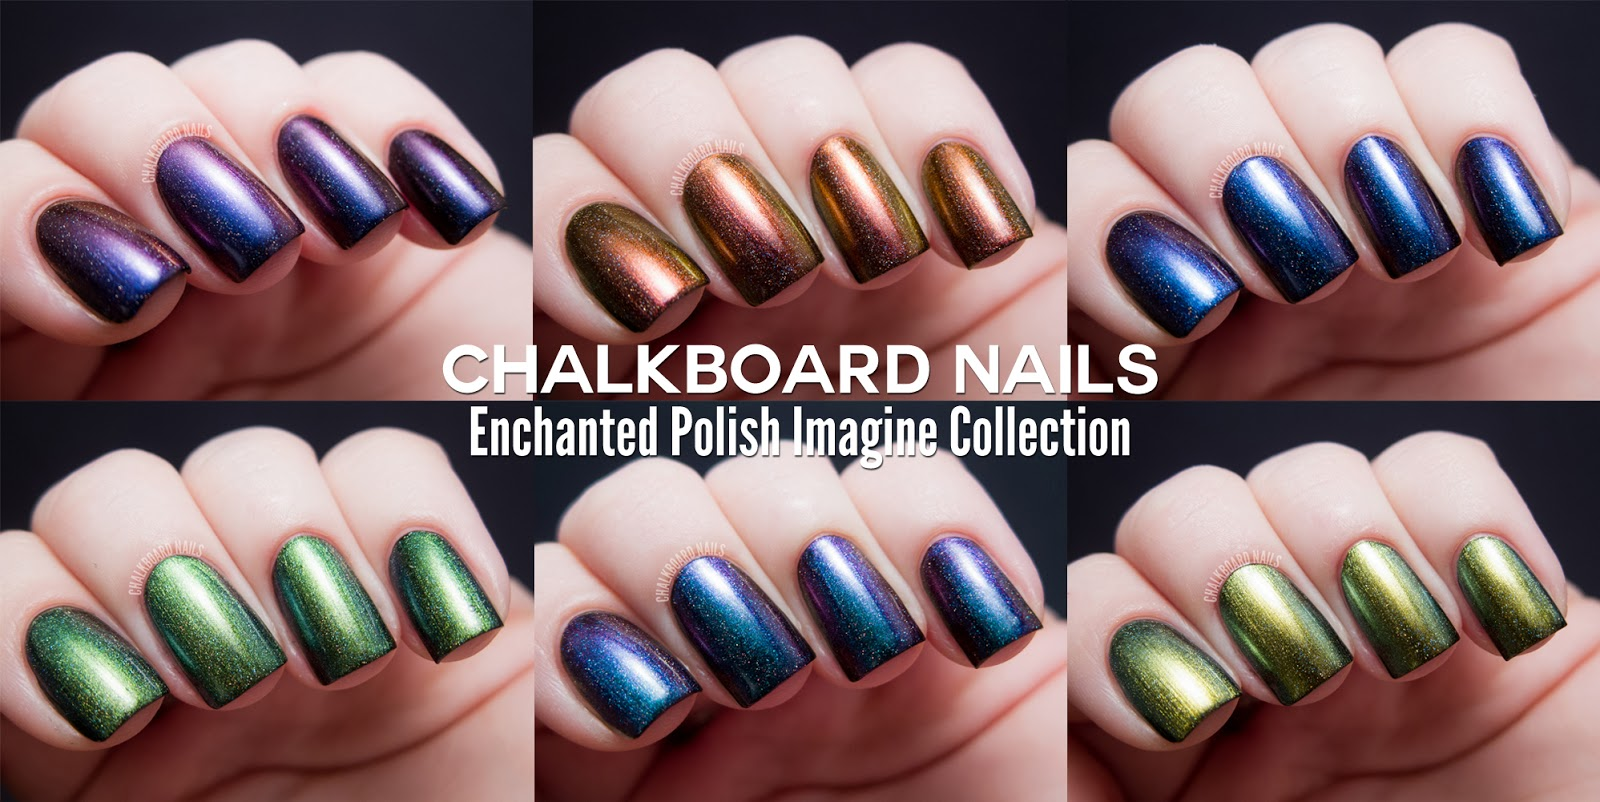 Magnificent How To Nail Art Huge Essie Yellow Nail Polish Solid Chanel Malice Nail Polish New Fashion Nail Art Youthful Nail Art Onalaska Wi OrangeCopper Penny Nail Polish Enchanted Polish Imagine Collection | Chalkboard Nails | Nail Art Blog